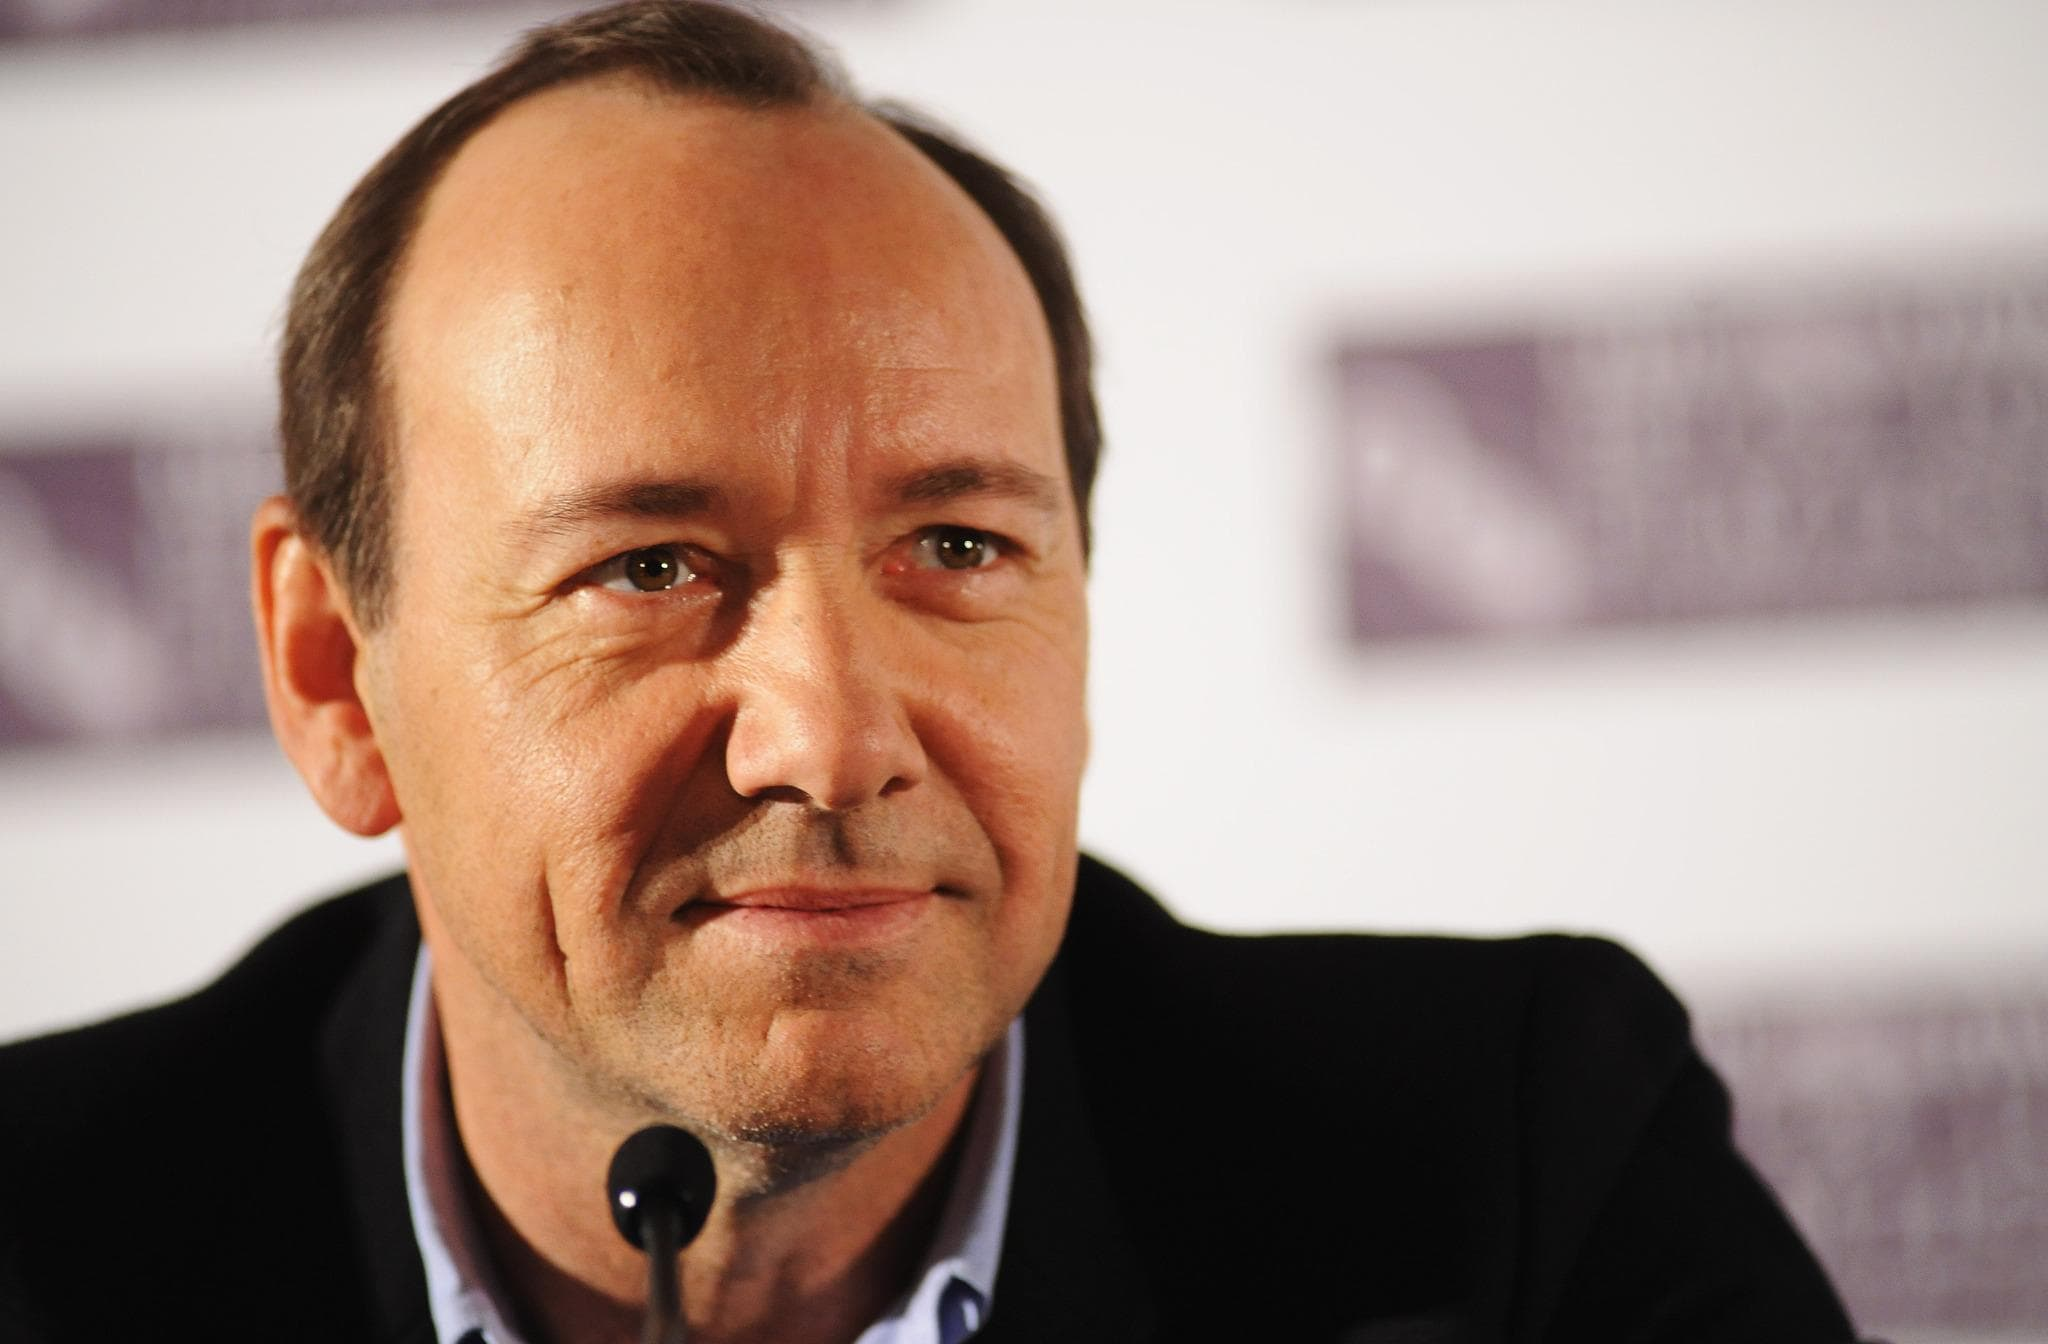 kevin spacey - HD 2048×1344